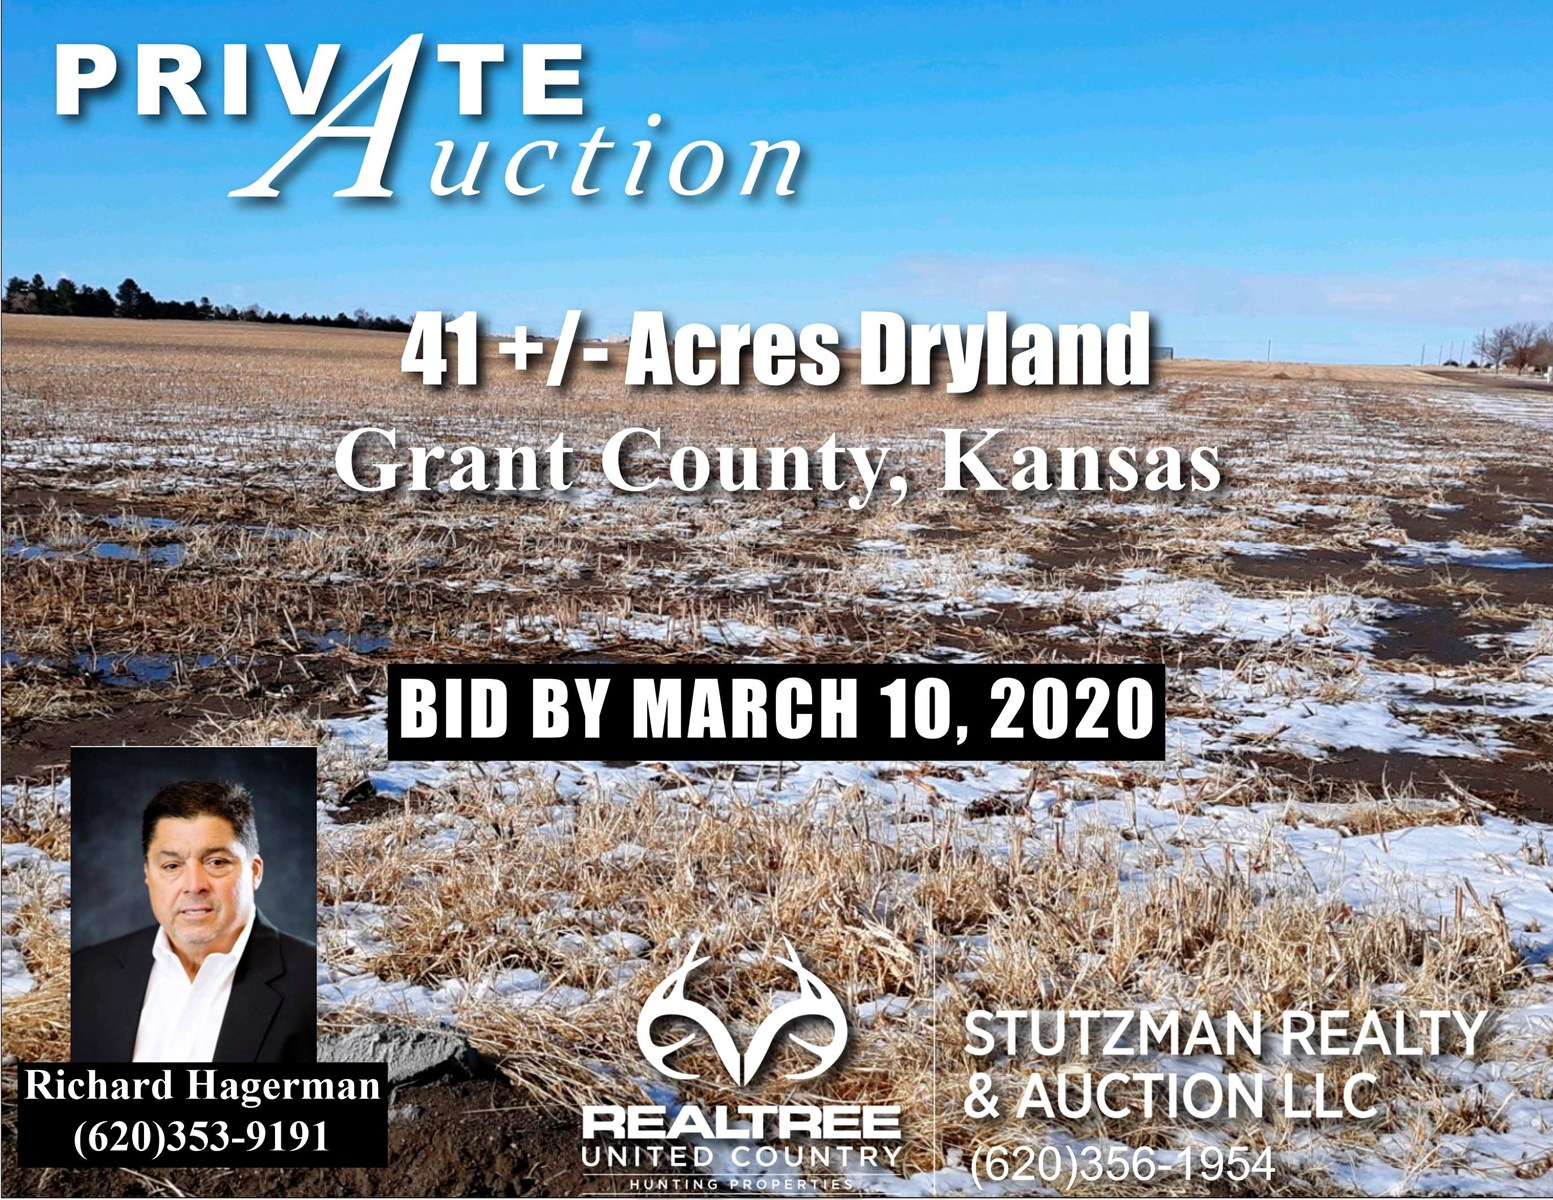 GRANT COUNTY ~ ULYSSES, KS ~ 41.8+/- ACRE ~ PRIVATE AUCTION